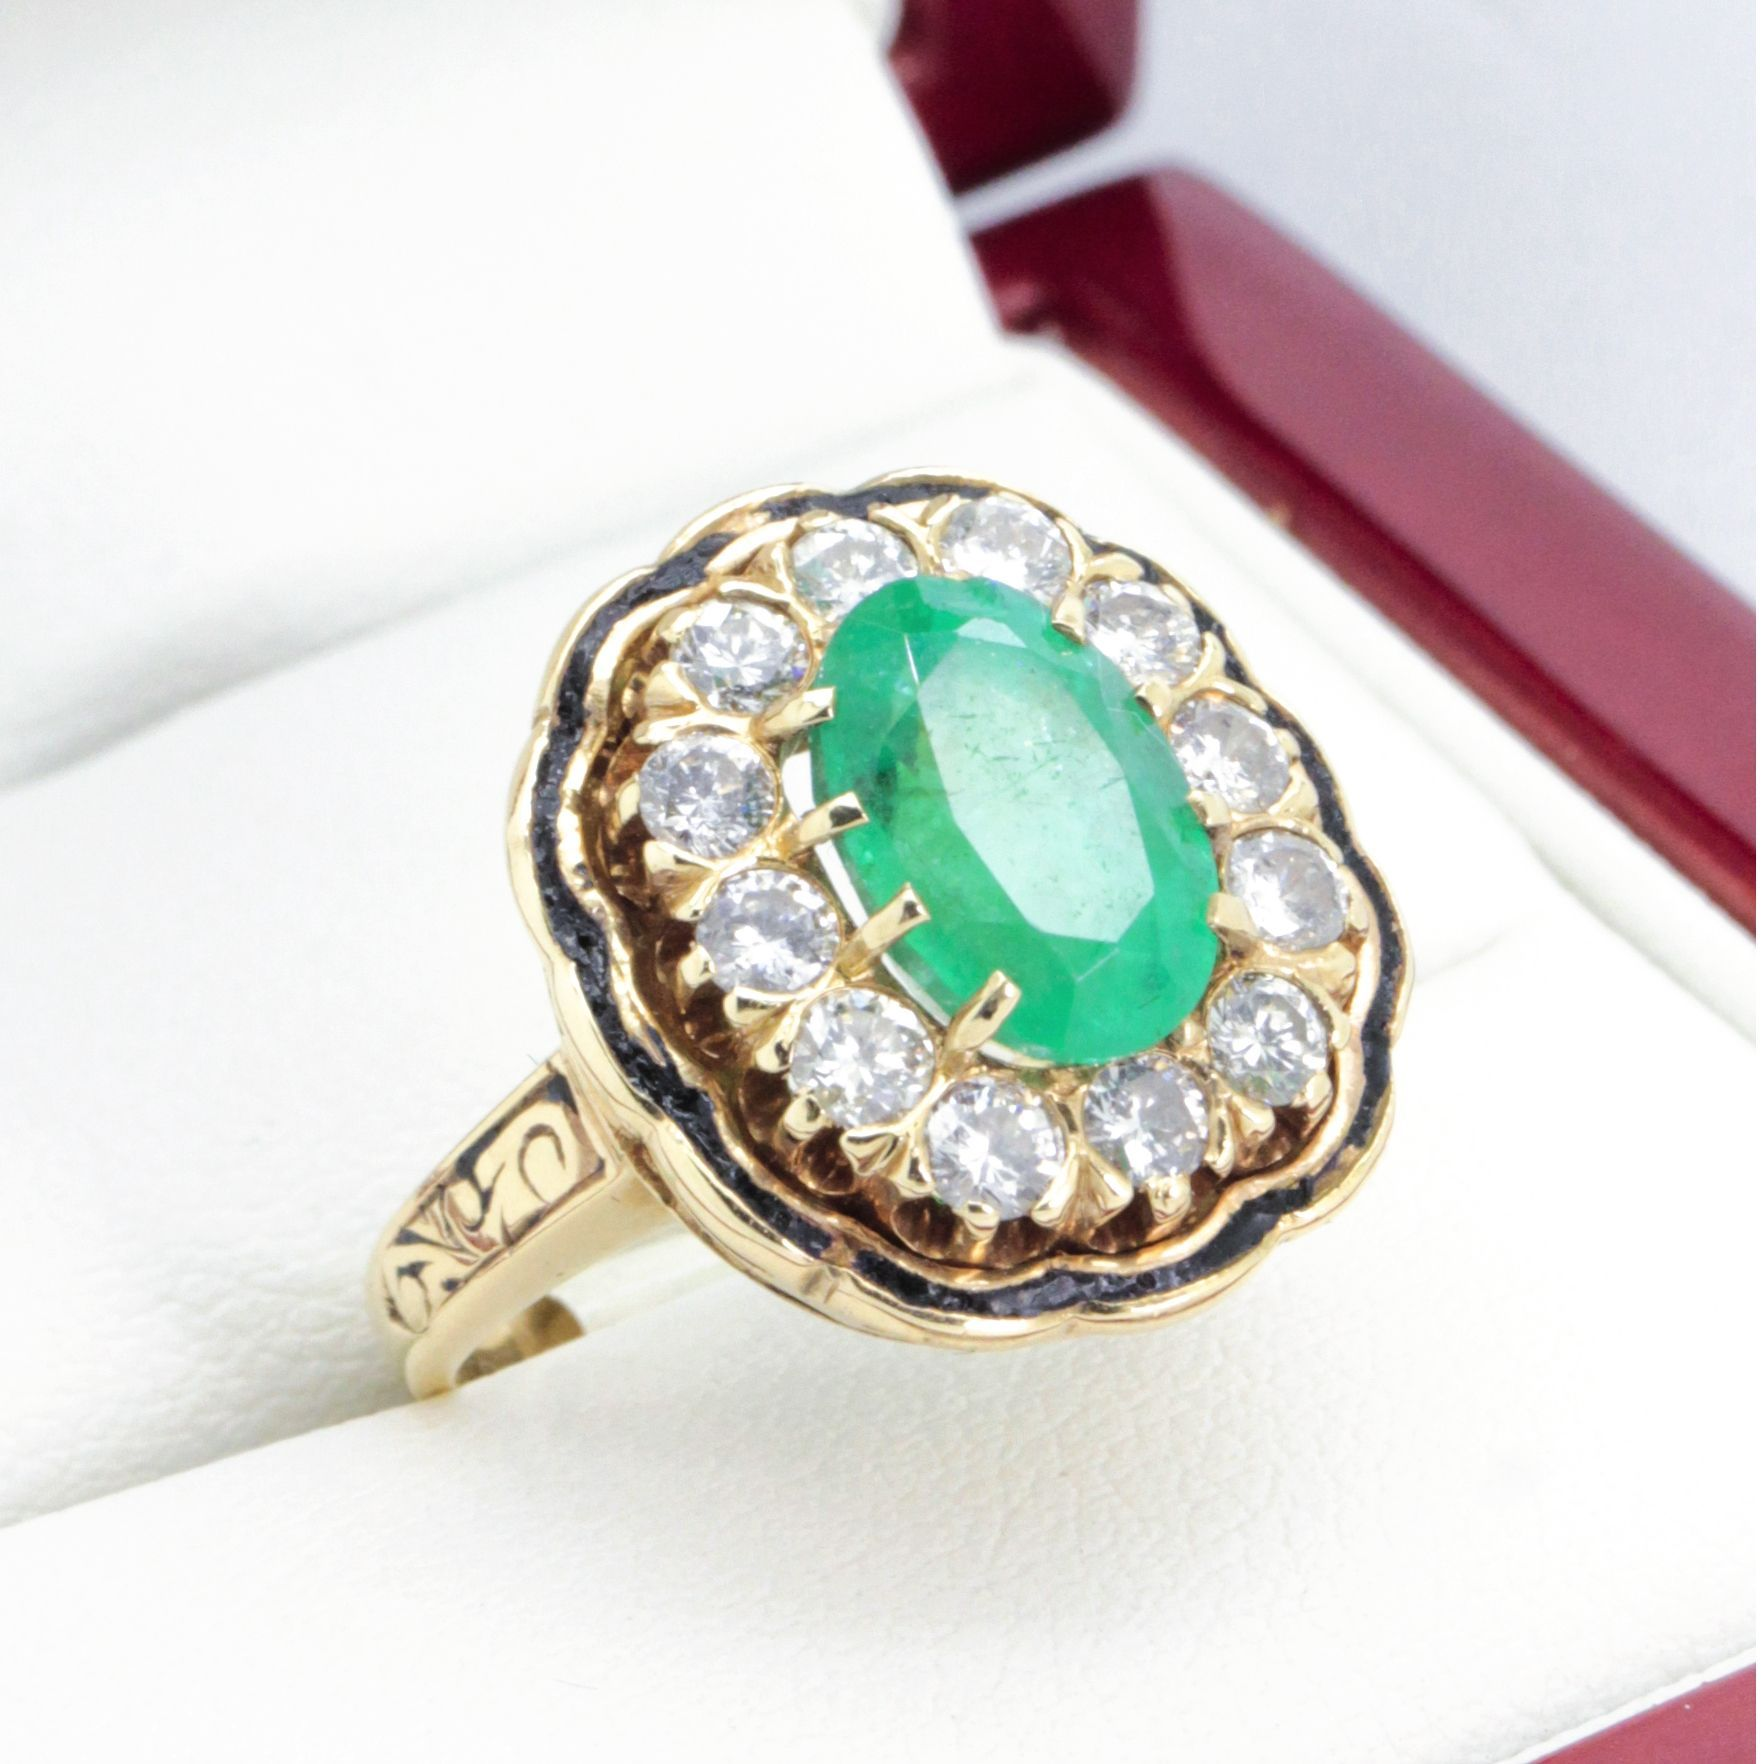 Fashion style Engagement Vintage rings from online shop collections for girls